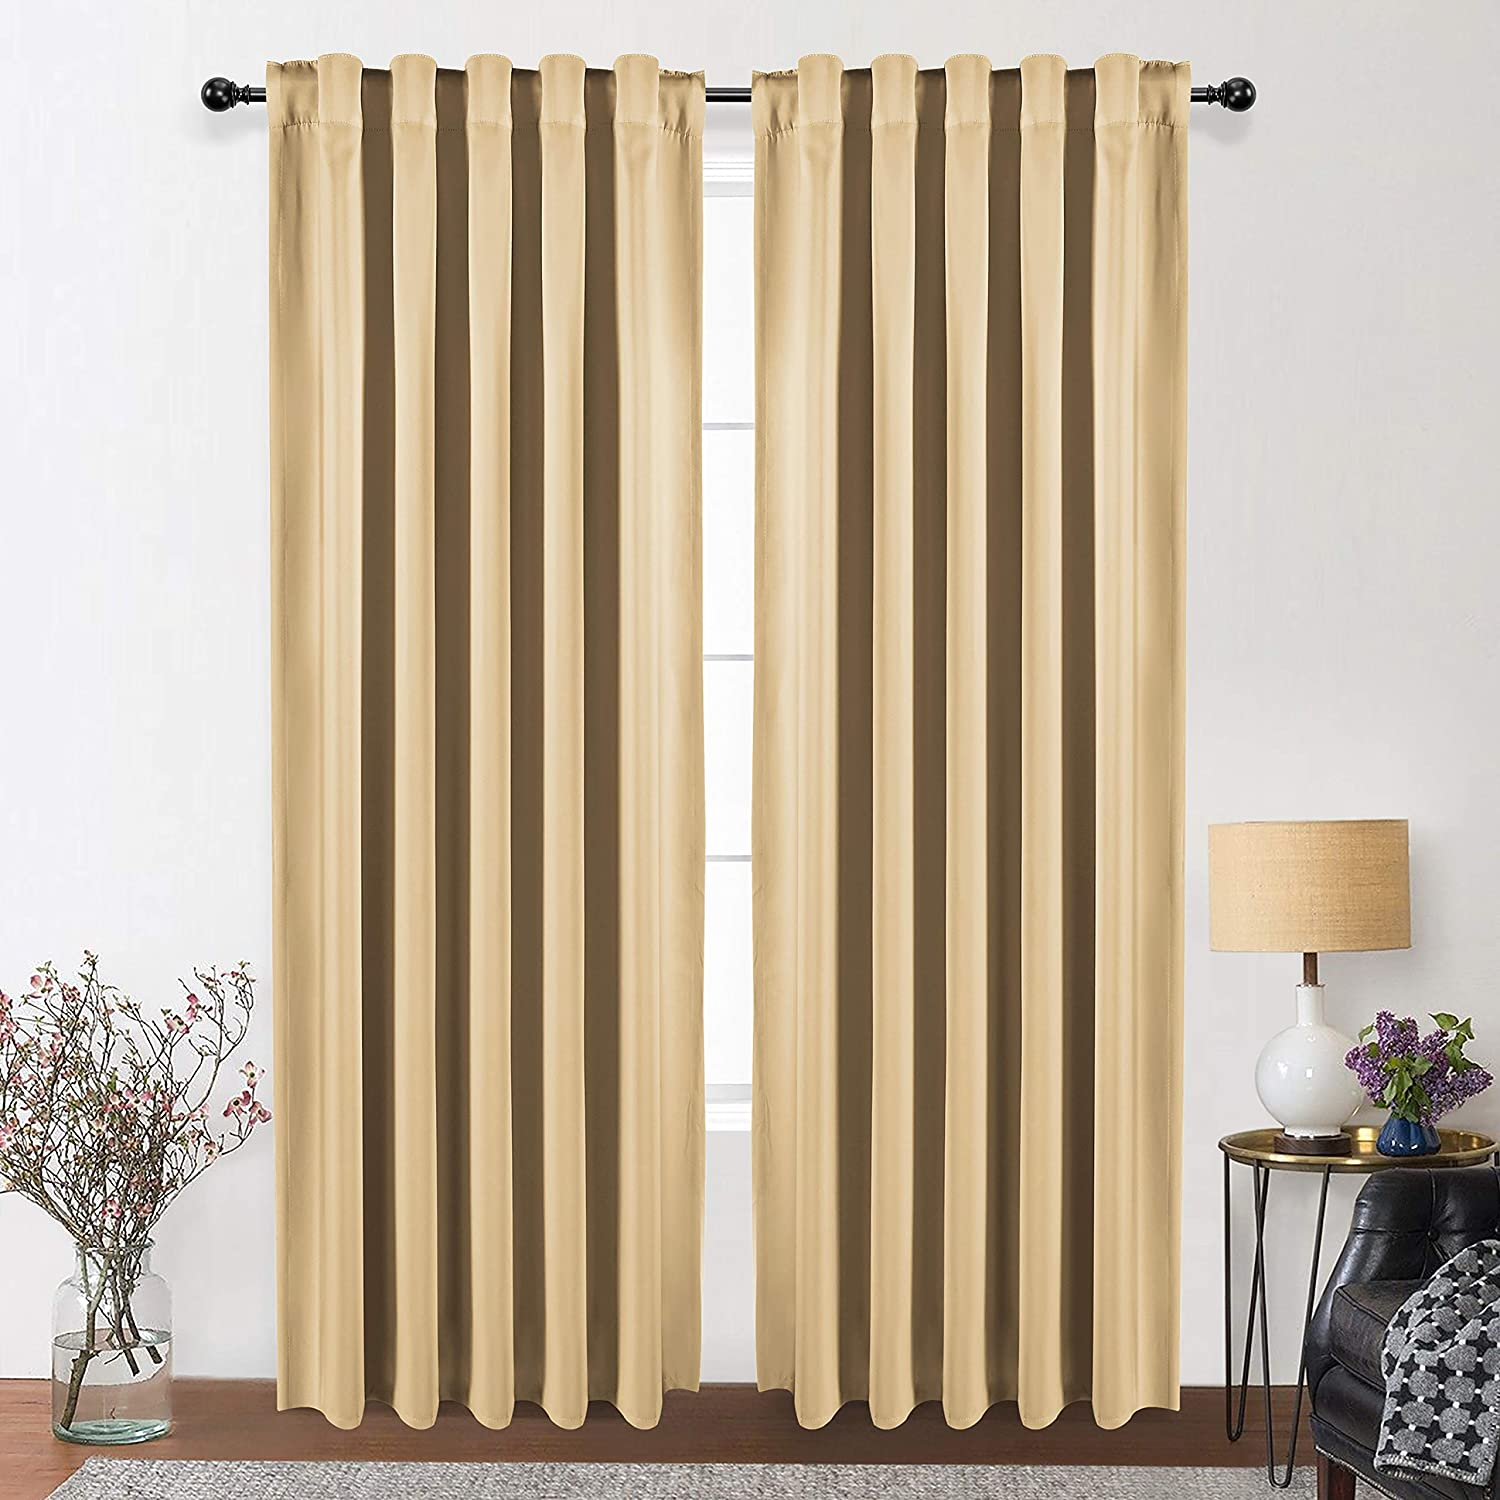 WONTEX Thermal Insulated Blackout Curtains, Back Tab and Rod Pocket Room Darkening Curtains for Living Room and Bedroom, Set of 2 Curtain Panels, 42 x 72 inch, Beige